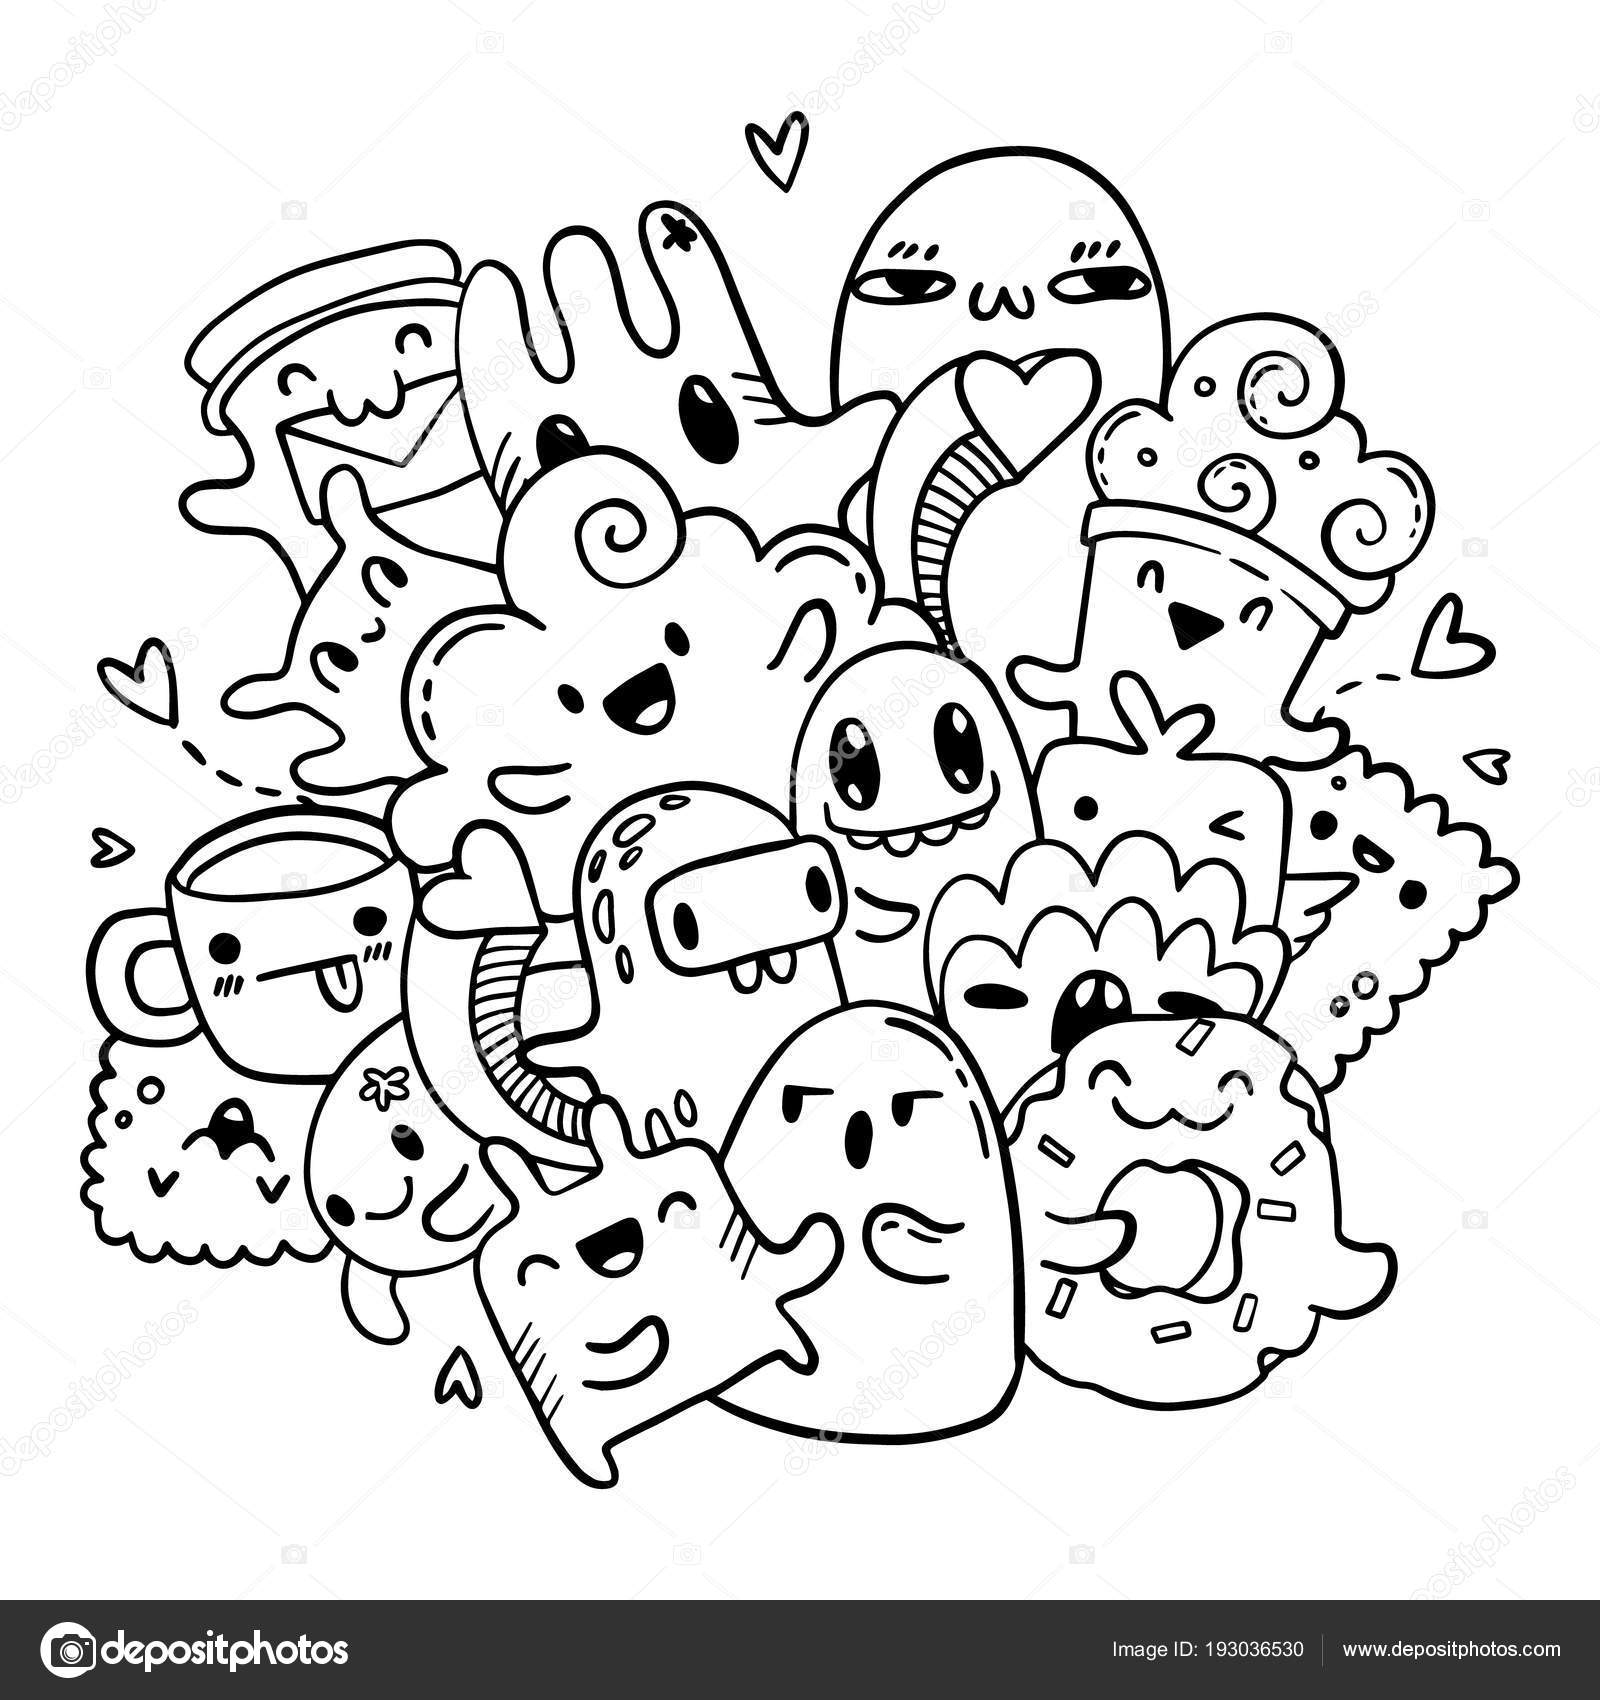 Cute Doodles Hand Drawn Pattern Vector Isolated Outline Set Of